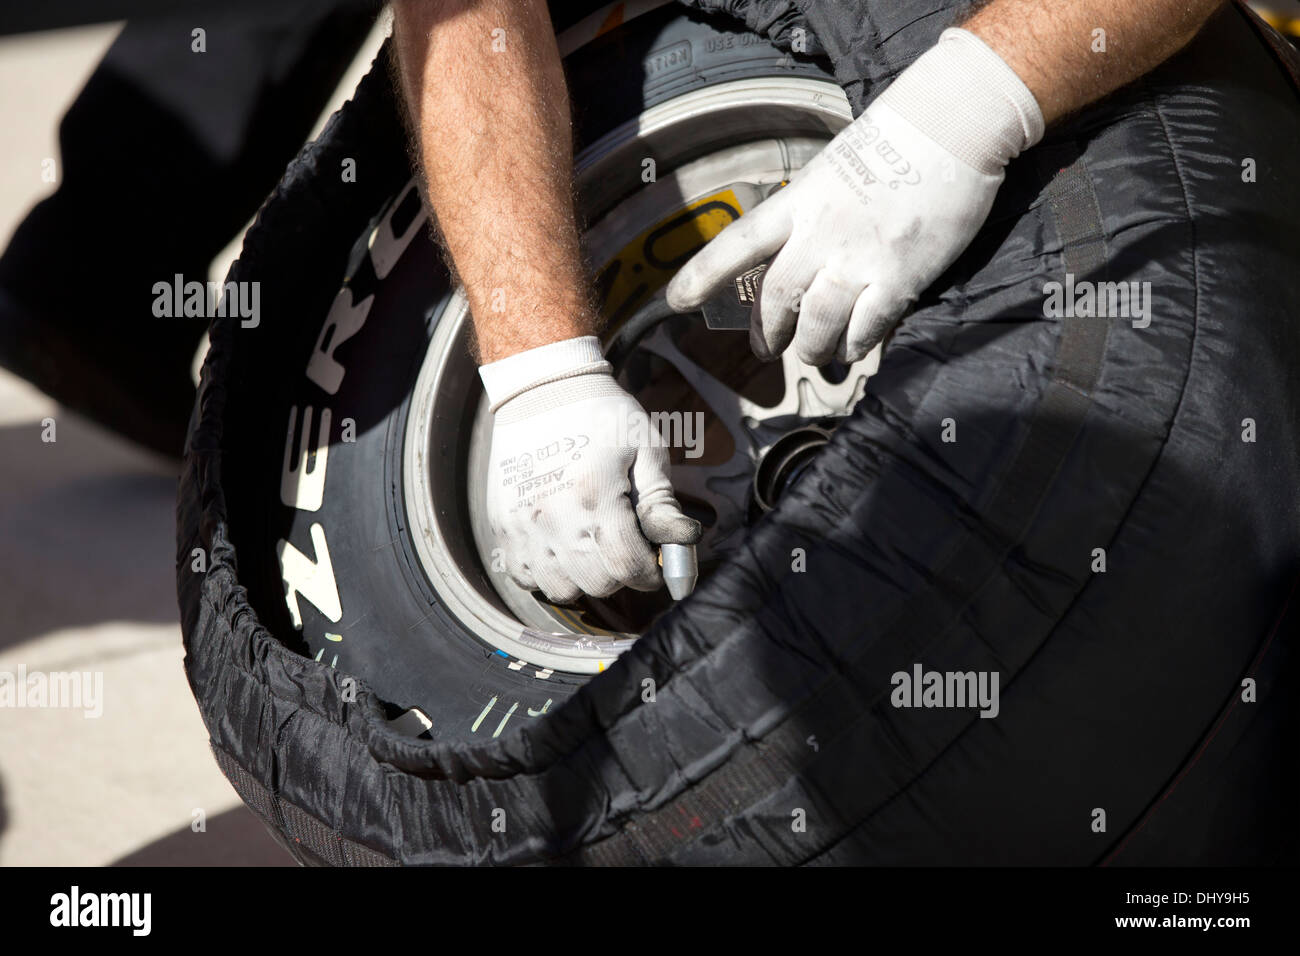 Mechanic checks temperature of tire during pit action at practice session for the Formula1 United States Grand Prix Stock Photo